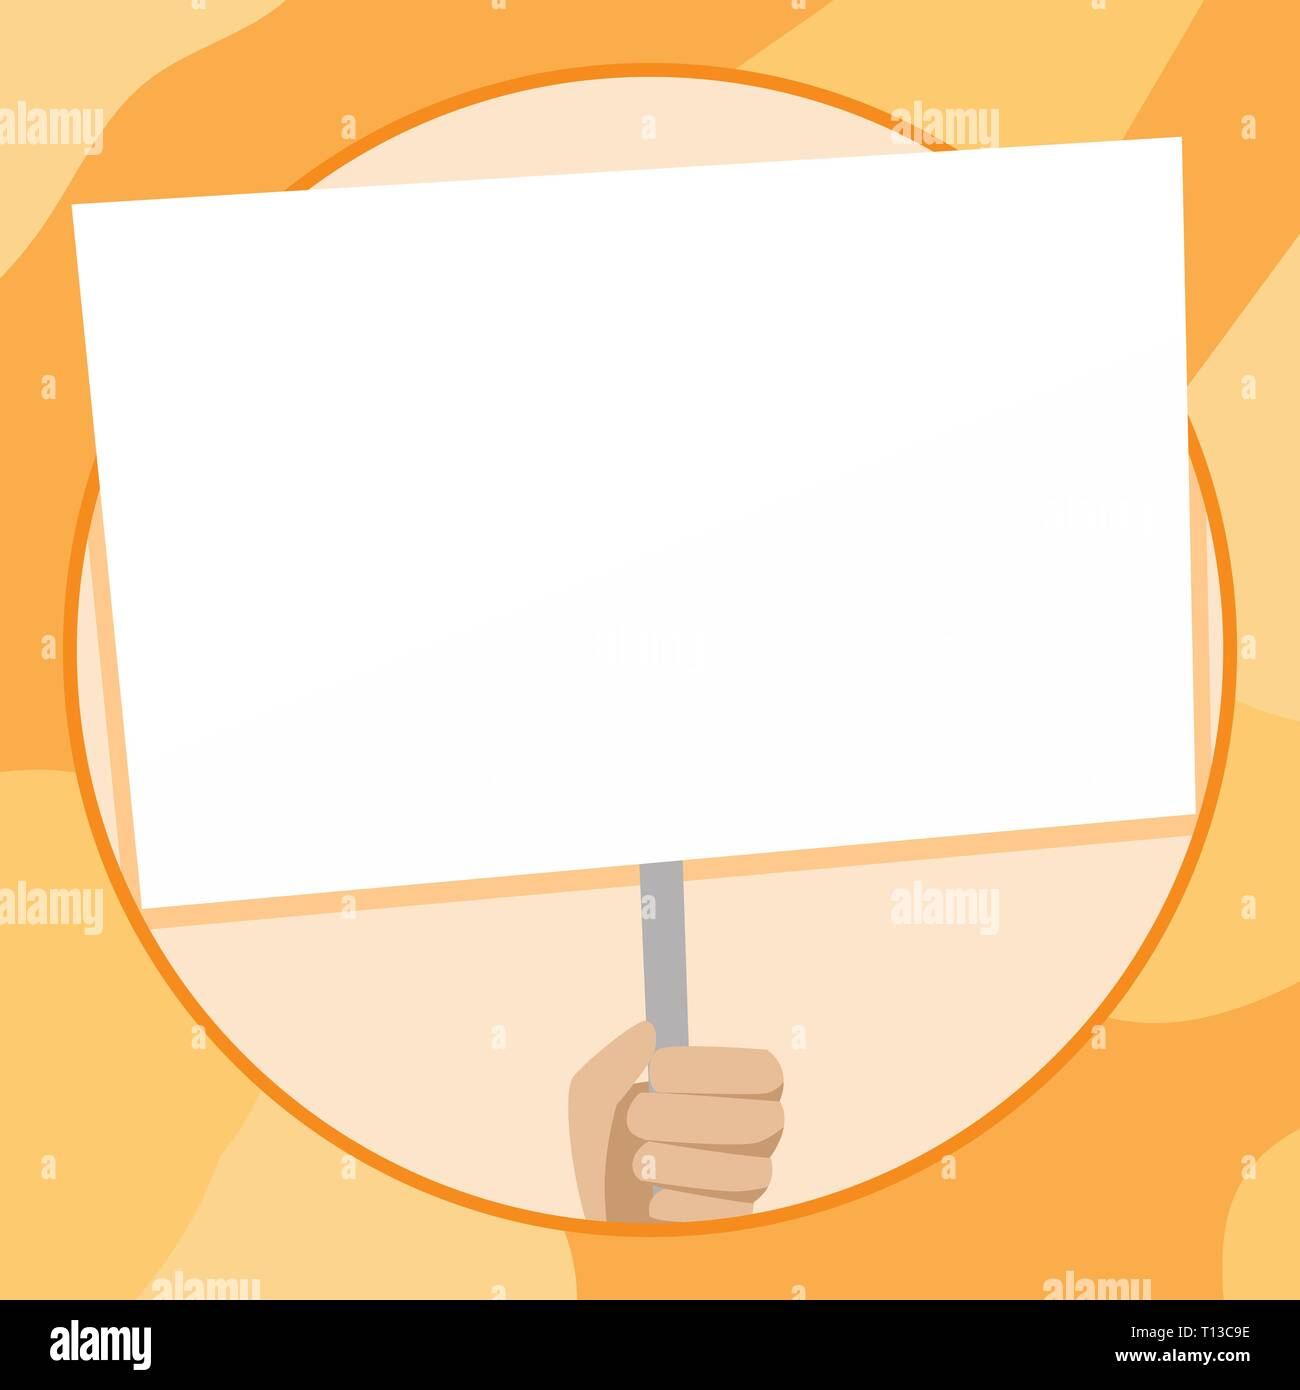 Hand Holding Blank White Placard Supported by Handle for Social Awareness Design business Empty template isolated Minimalist graphic layout template f - Stock Vector